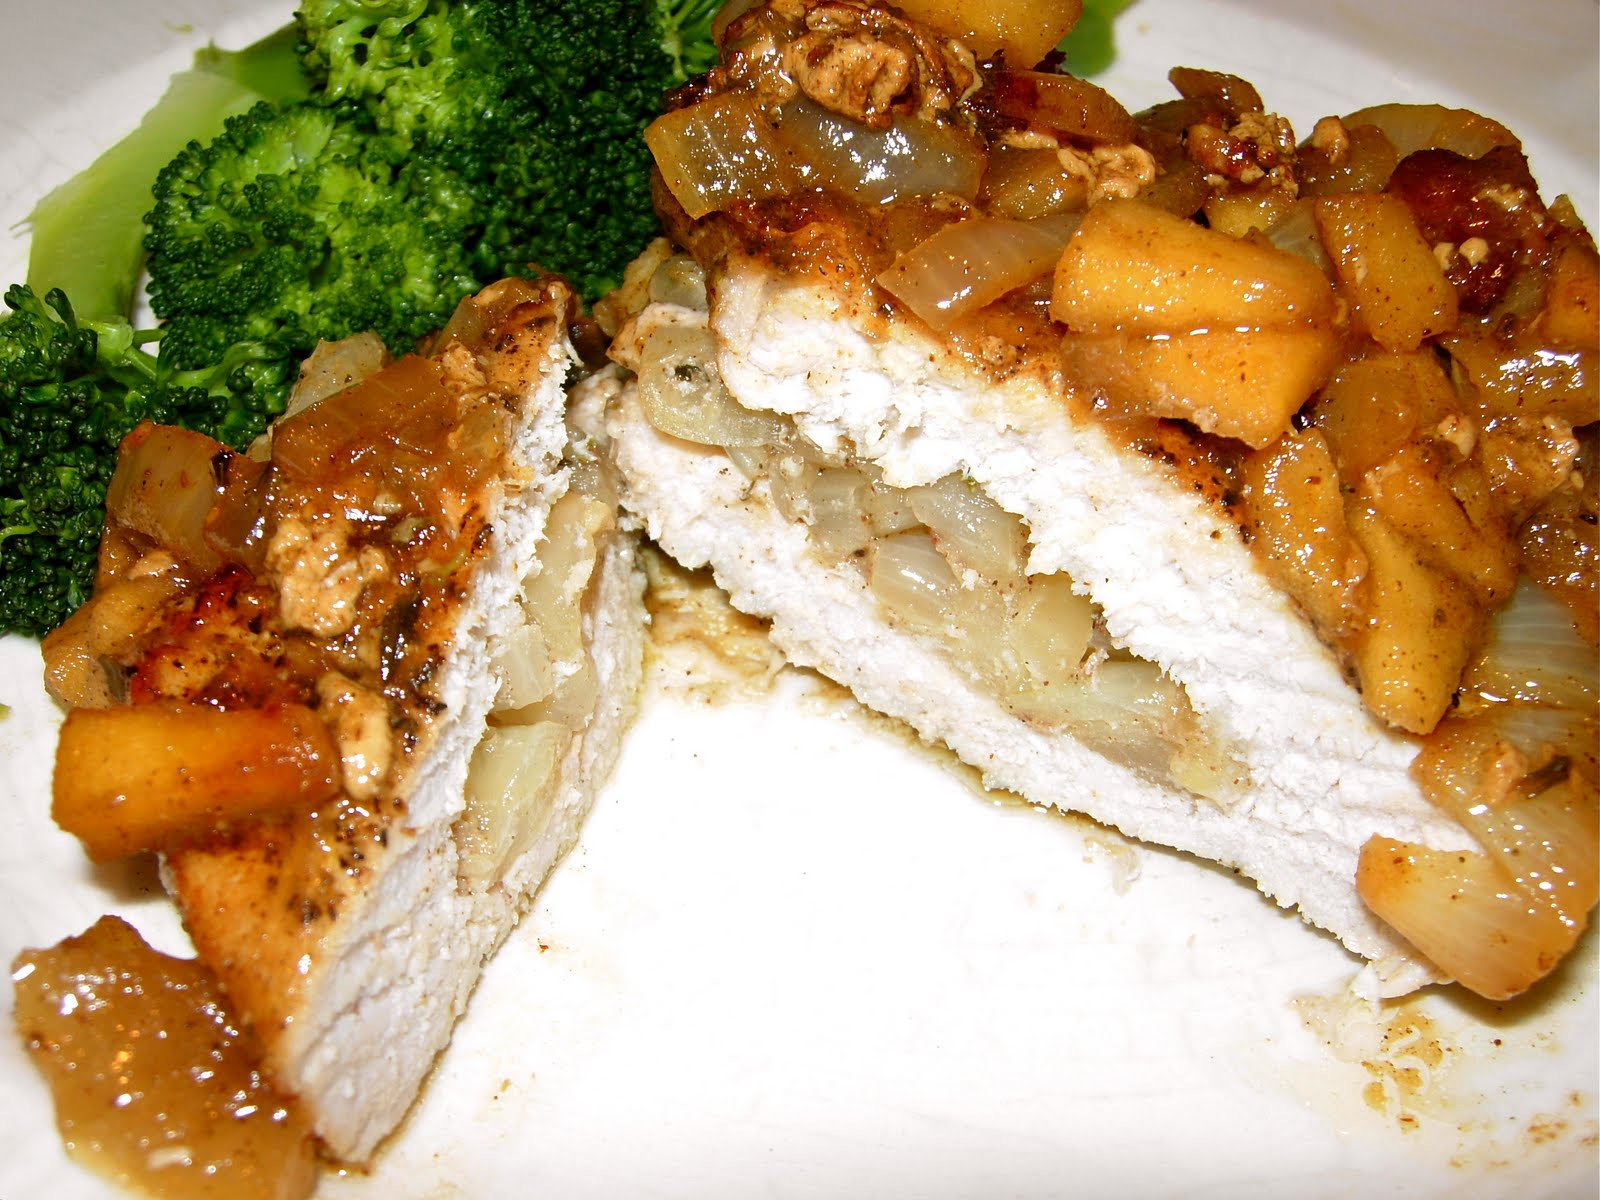 CFSCC presents: EAT THIS!: Apple and Onion-Stuffed Pork Chops